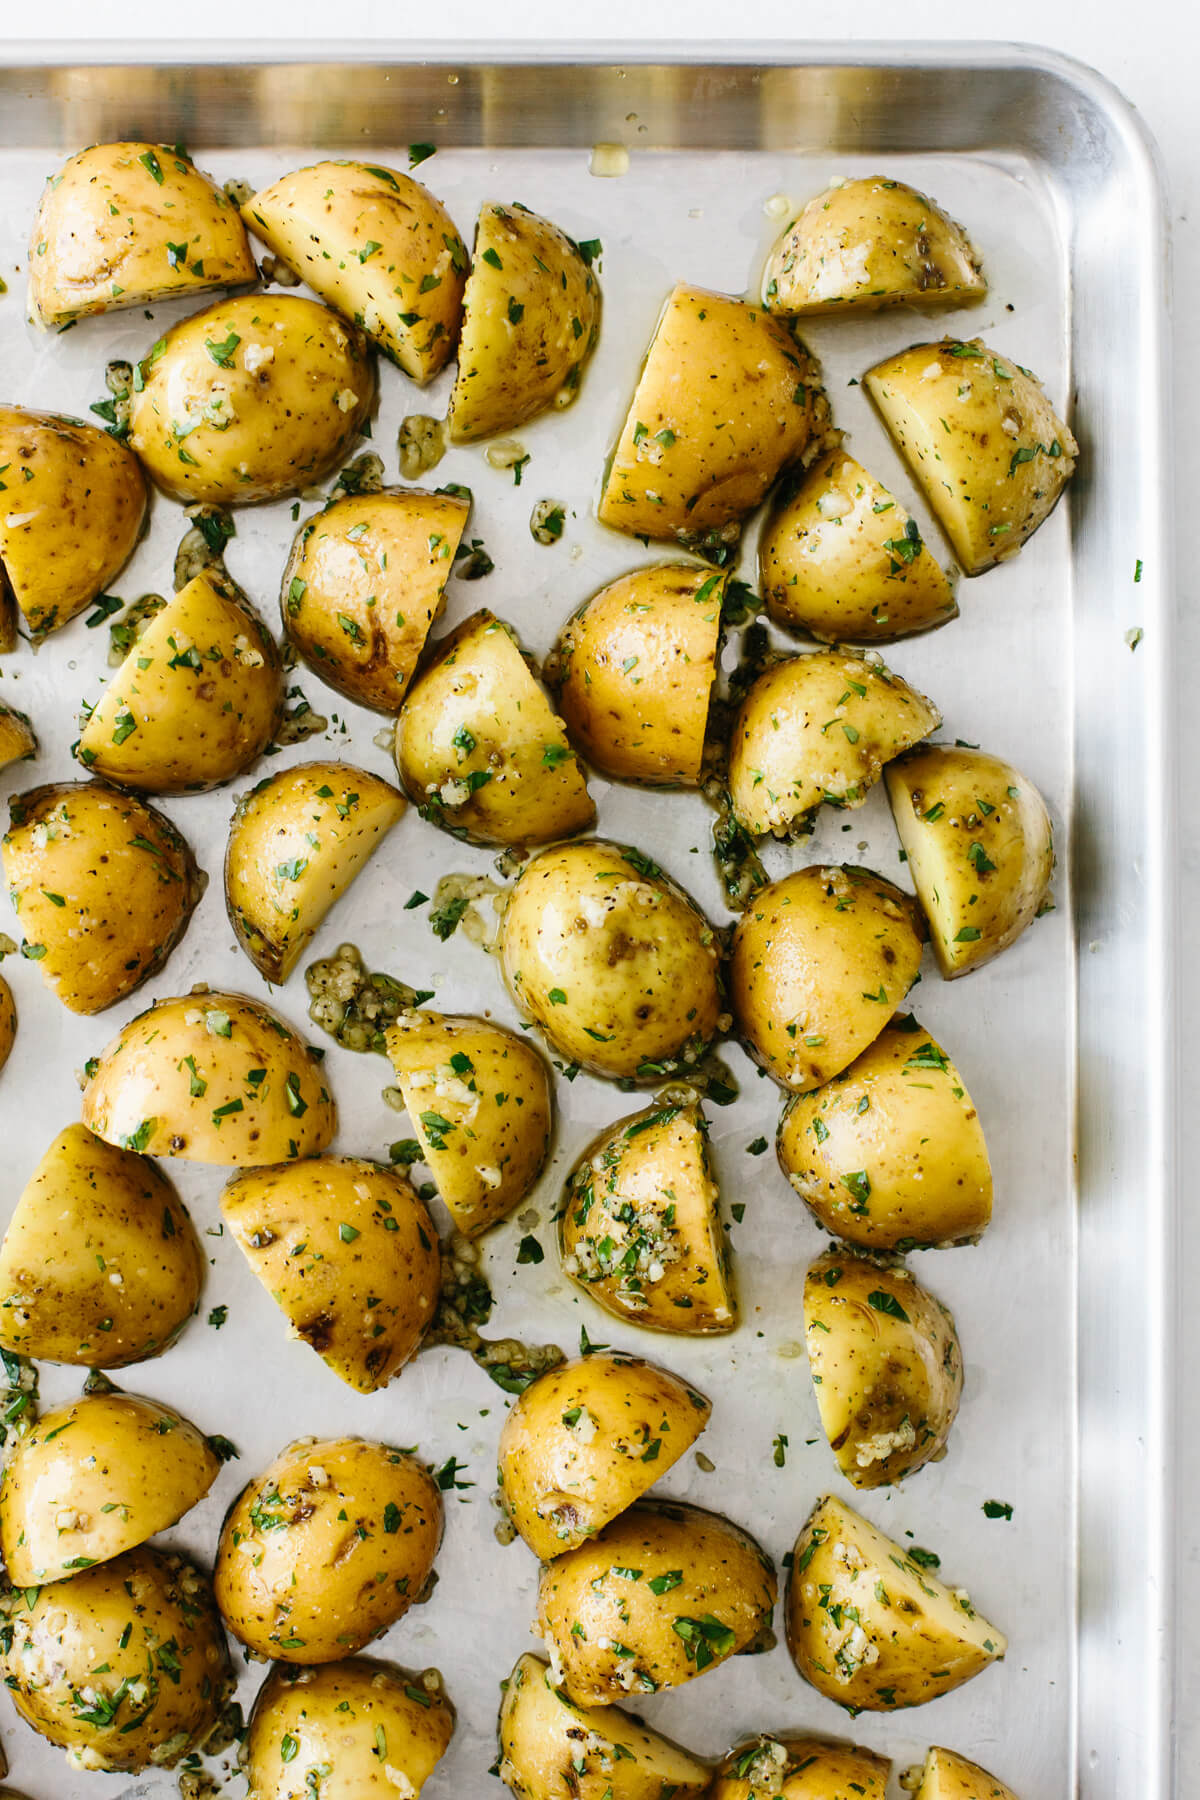 Potatoes on a baking sheet to get roasted in the oven.